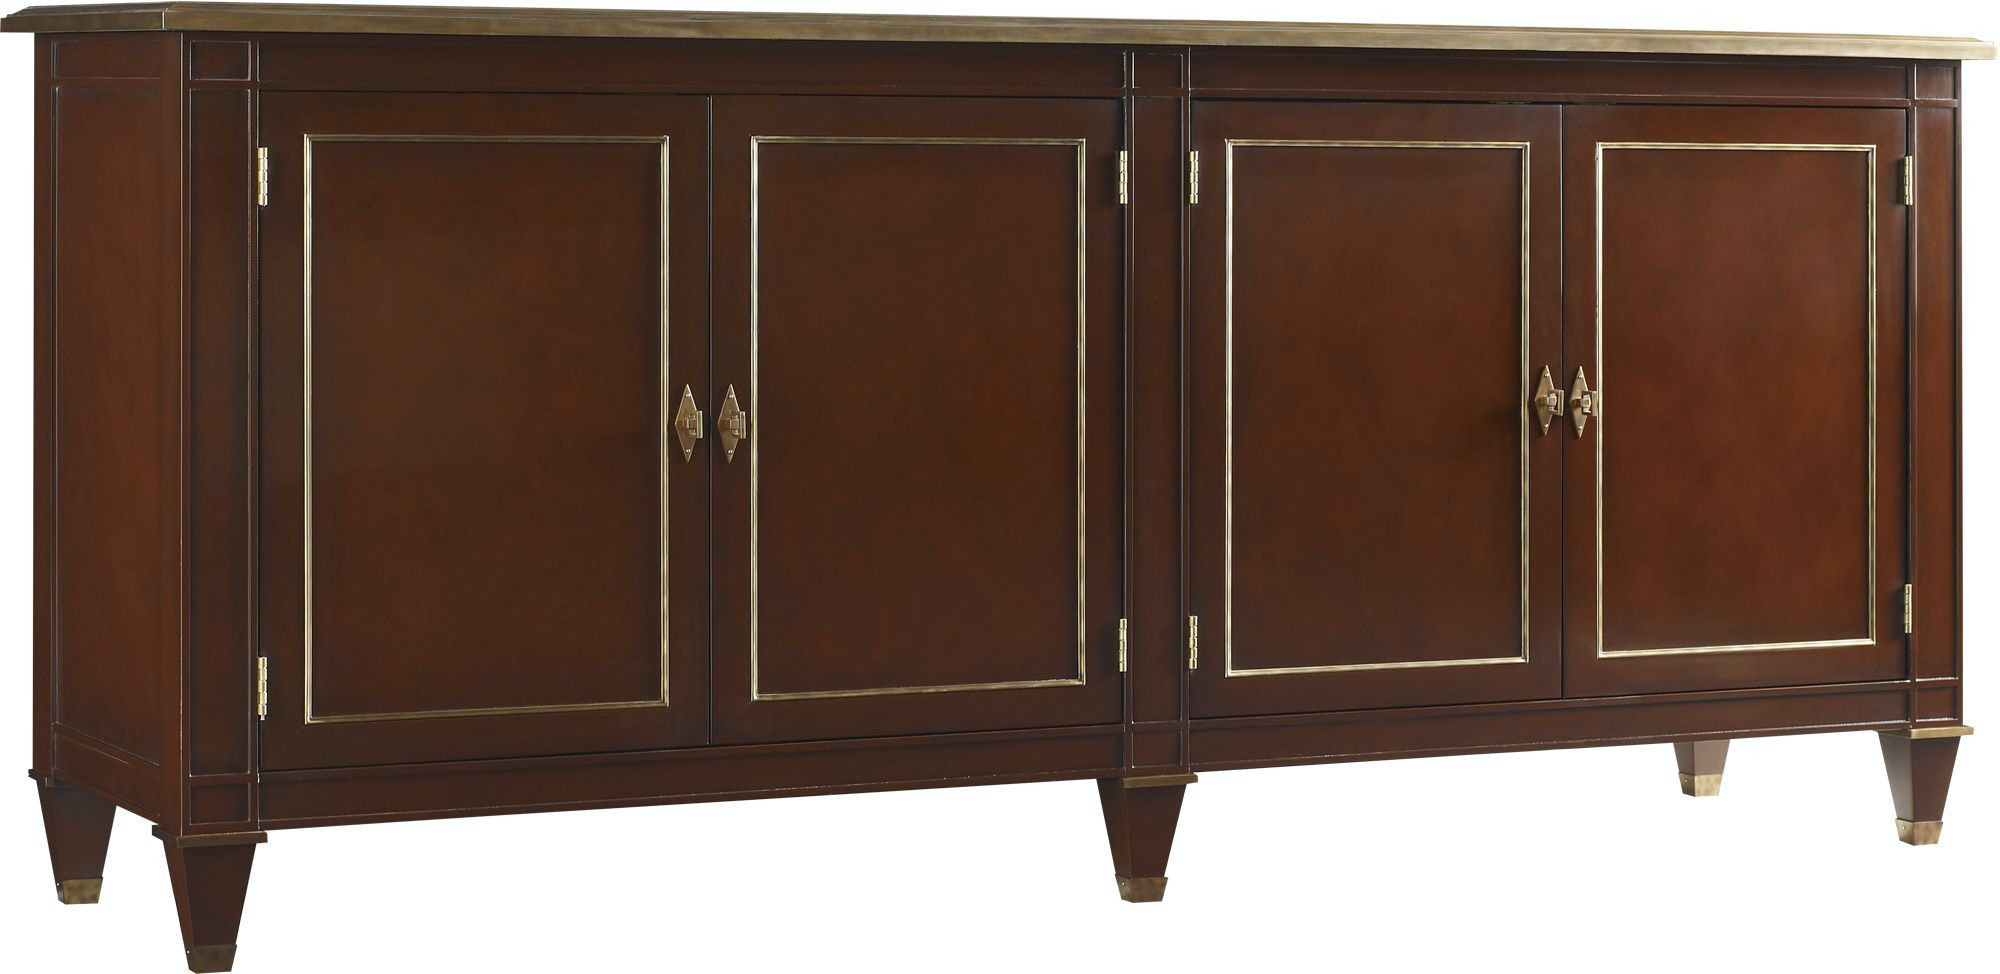 Baker Furniture Michael S Smith Martine Cabinet 9834